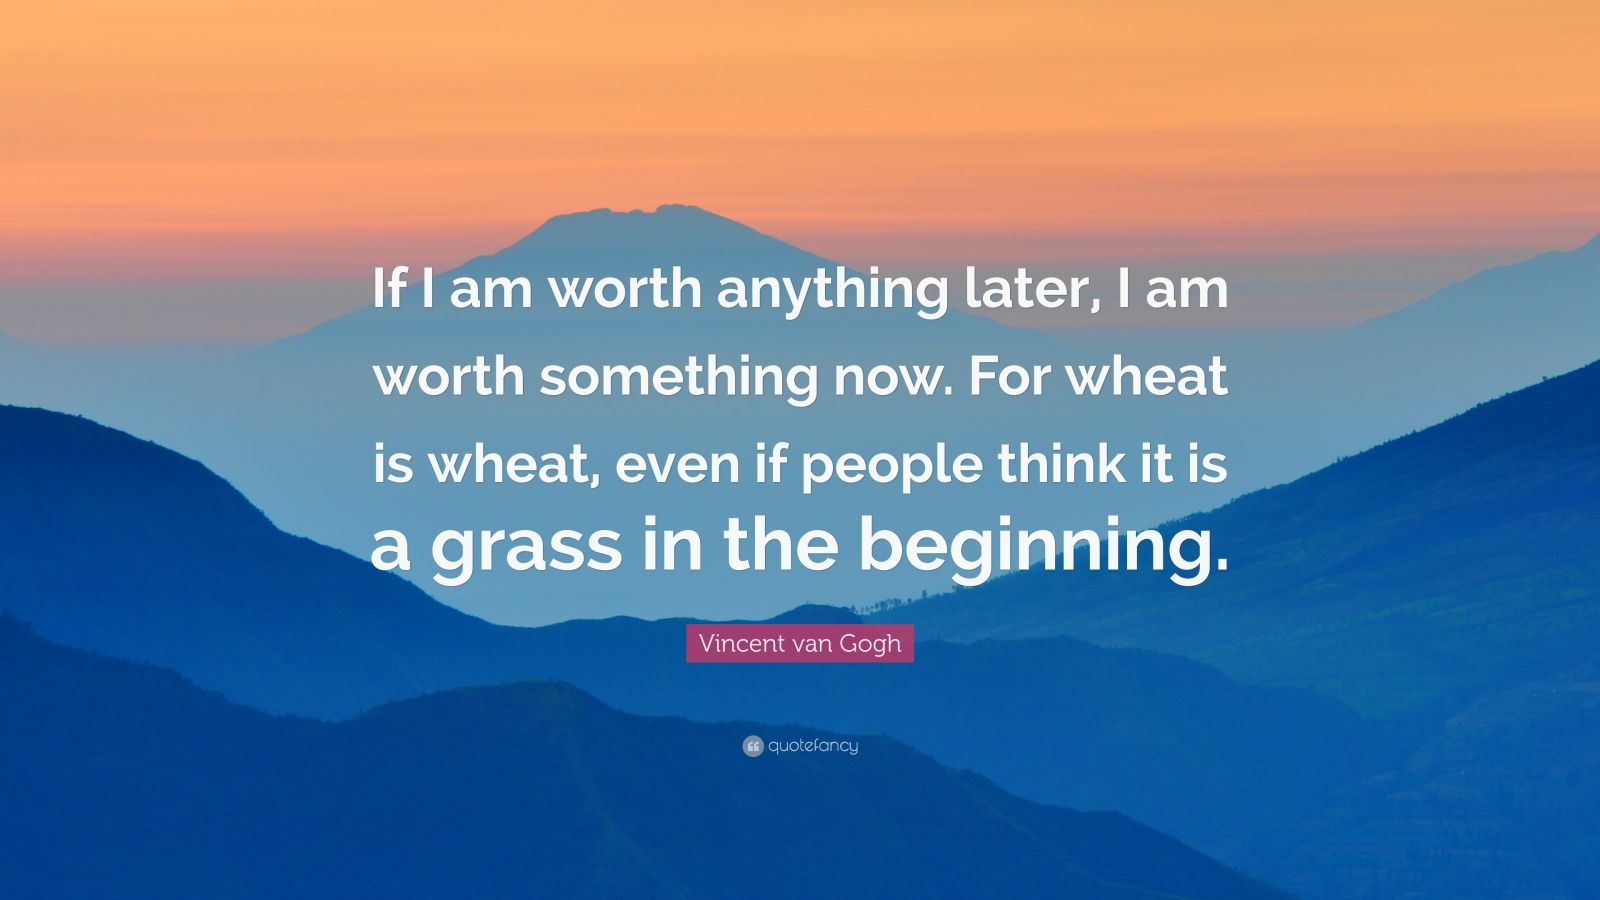 """Vincent van Gogh Quote: """"If I am worth anything later, I am worth something now. For wheat is wheat, even if people think it is a grass in the beginning."""""""